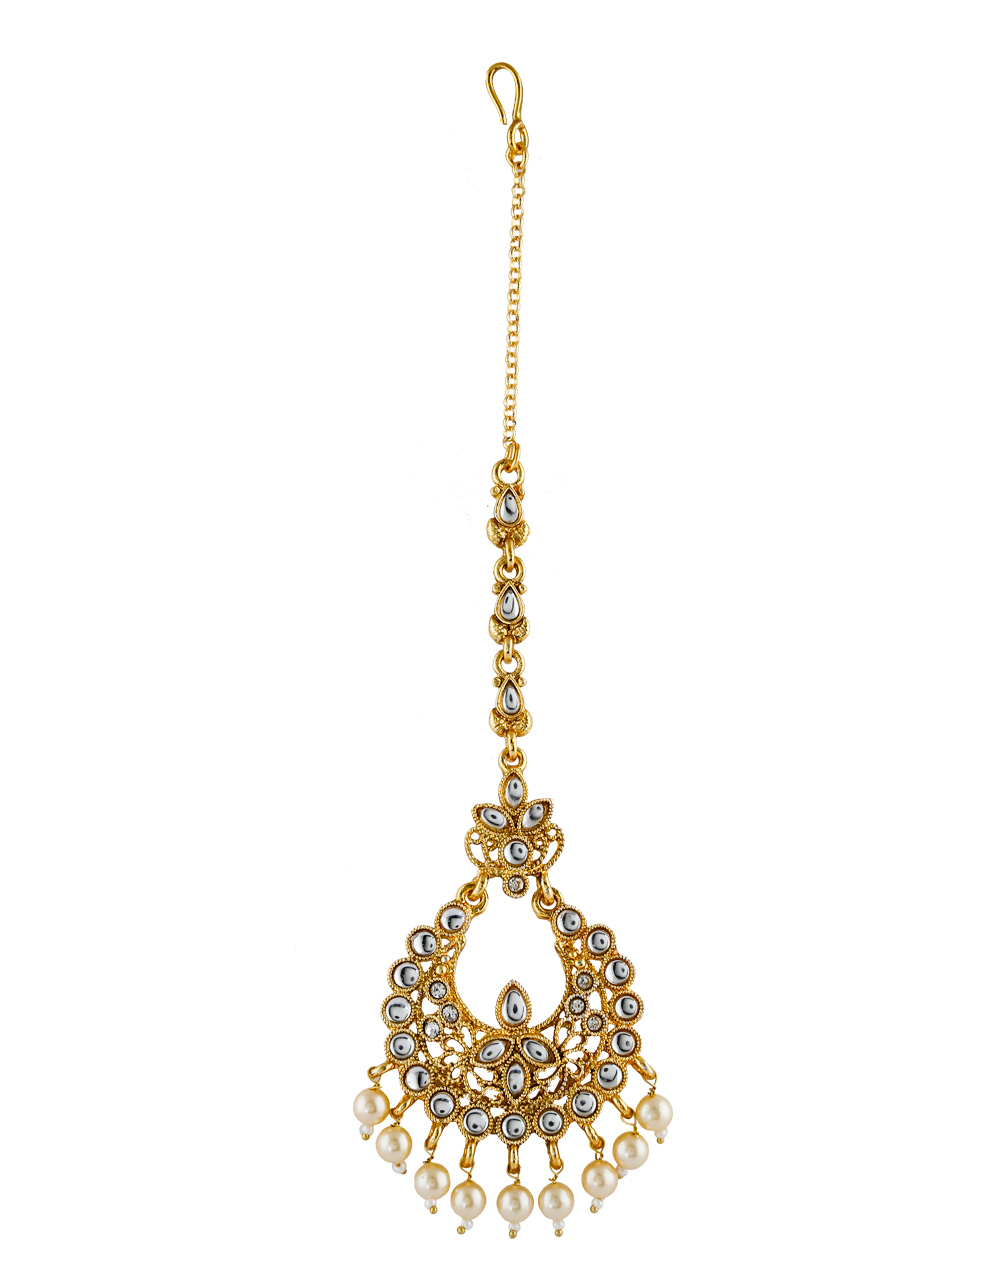 Antique Gold Finish Styled With Pearls Beads Maang Tikka